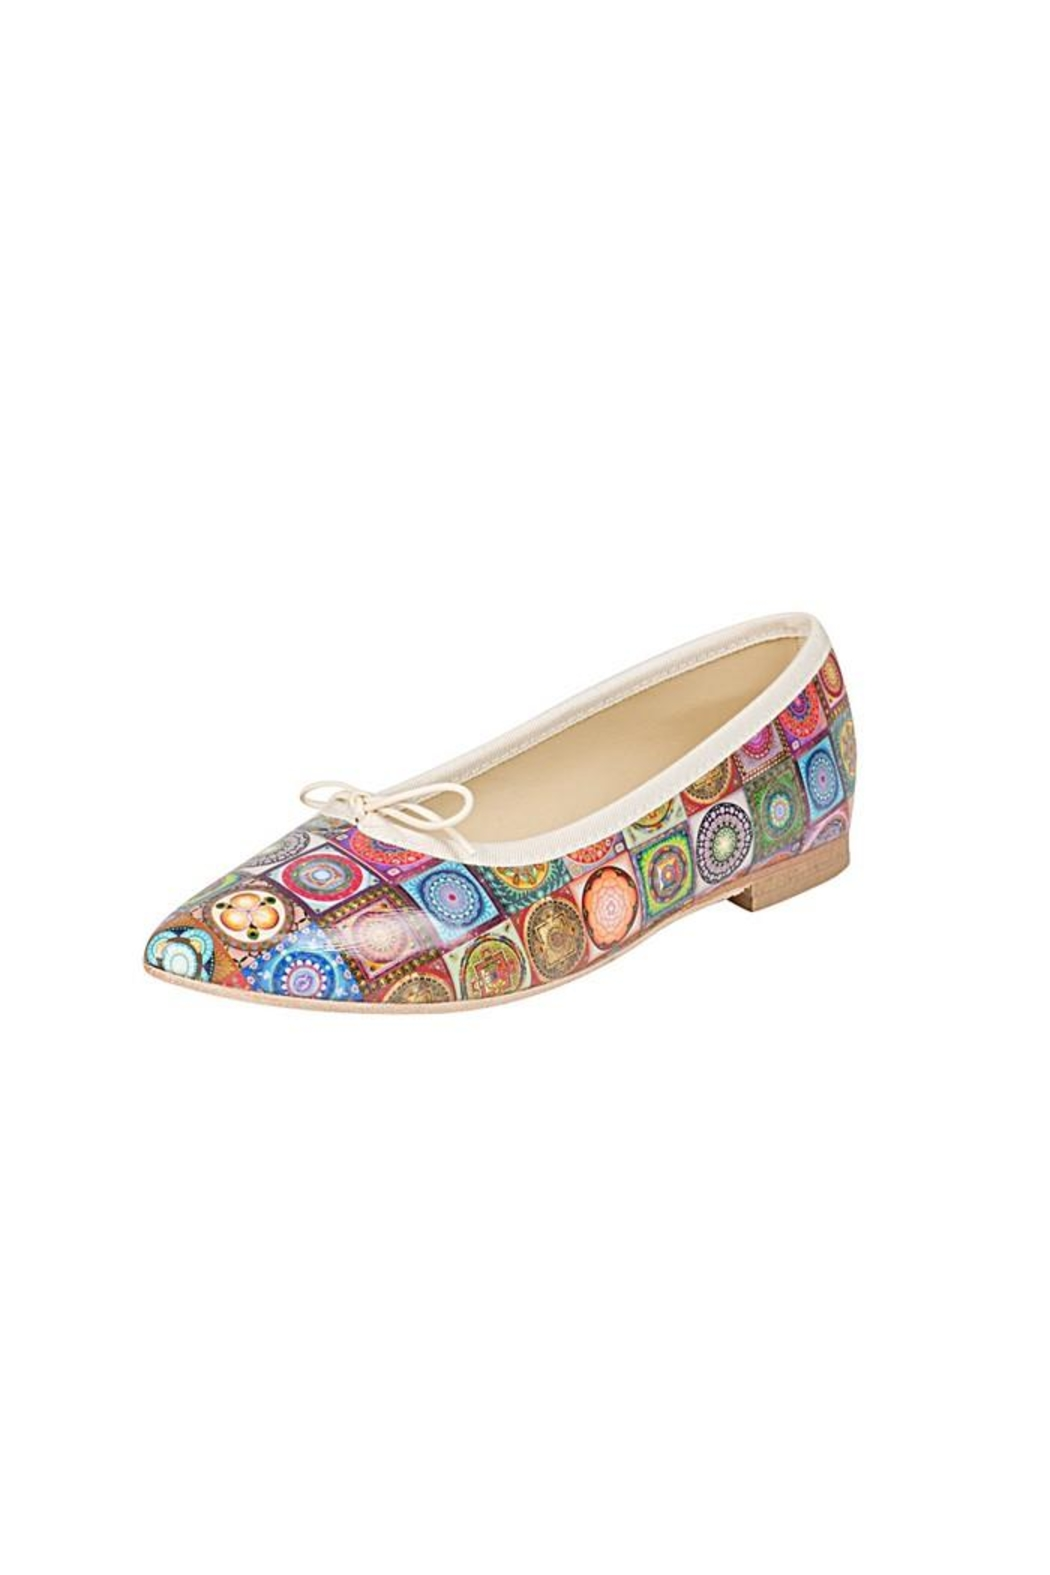 Misano Multicoloured-Tile Ballerina Flats - Front Full Image